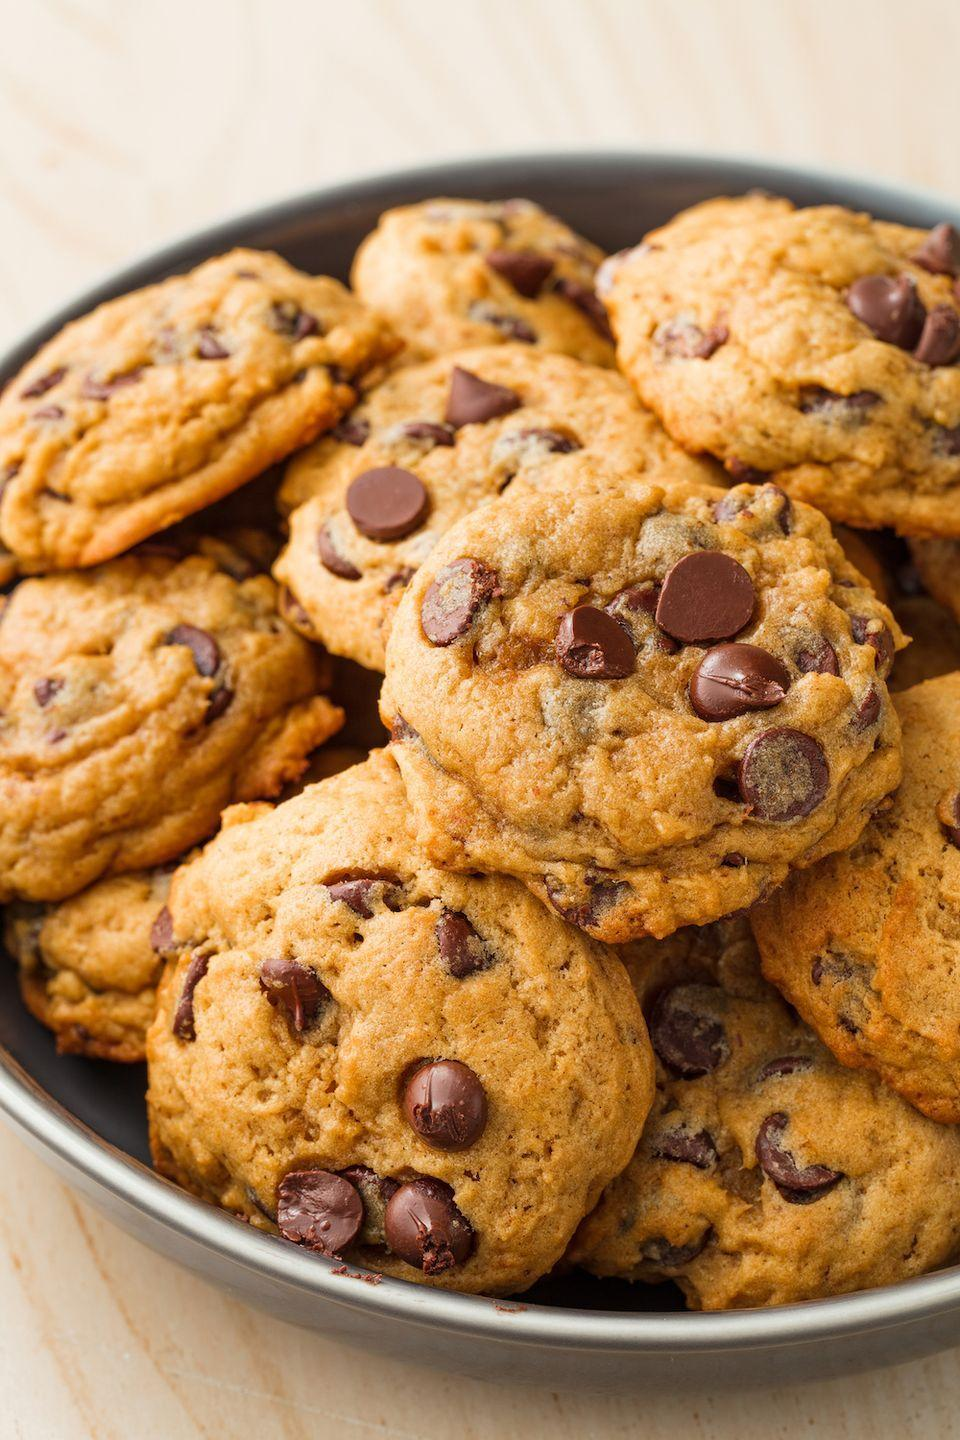 """<p>Baking these ALL season.</p><p>Get the recipe from <a href=""""https://www.delish.com/cooking/recipe-ideas/recipes/a55742/pumpkin-spice-chocolate-chip-cookies-recipe/"""" rel=""""nofollow noopener"""" target=""""_blank"""" data-ylk=""""slk:Delish"""" class=""""link rapid-noclick-resp"""">Delish</a>.</p>"""